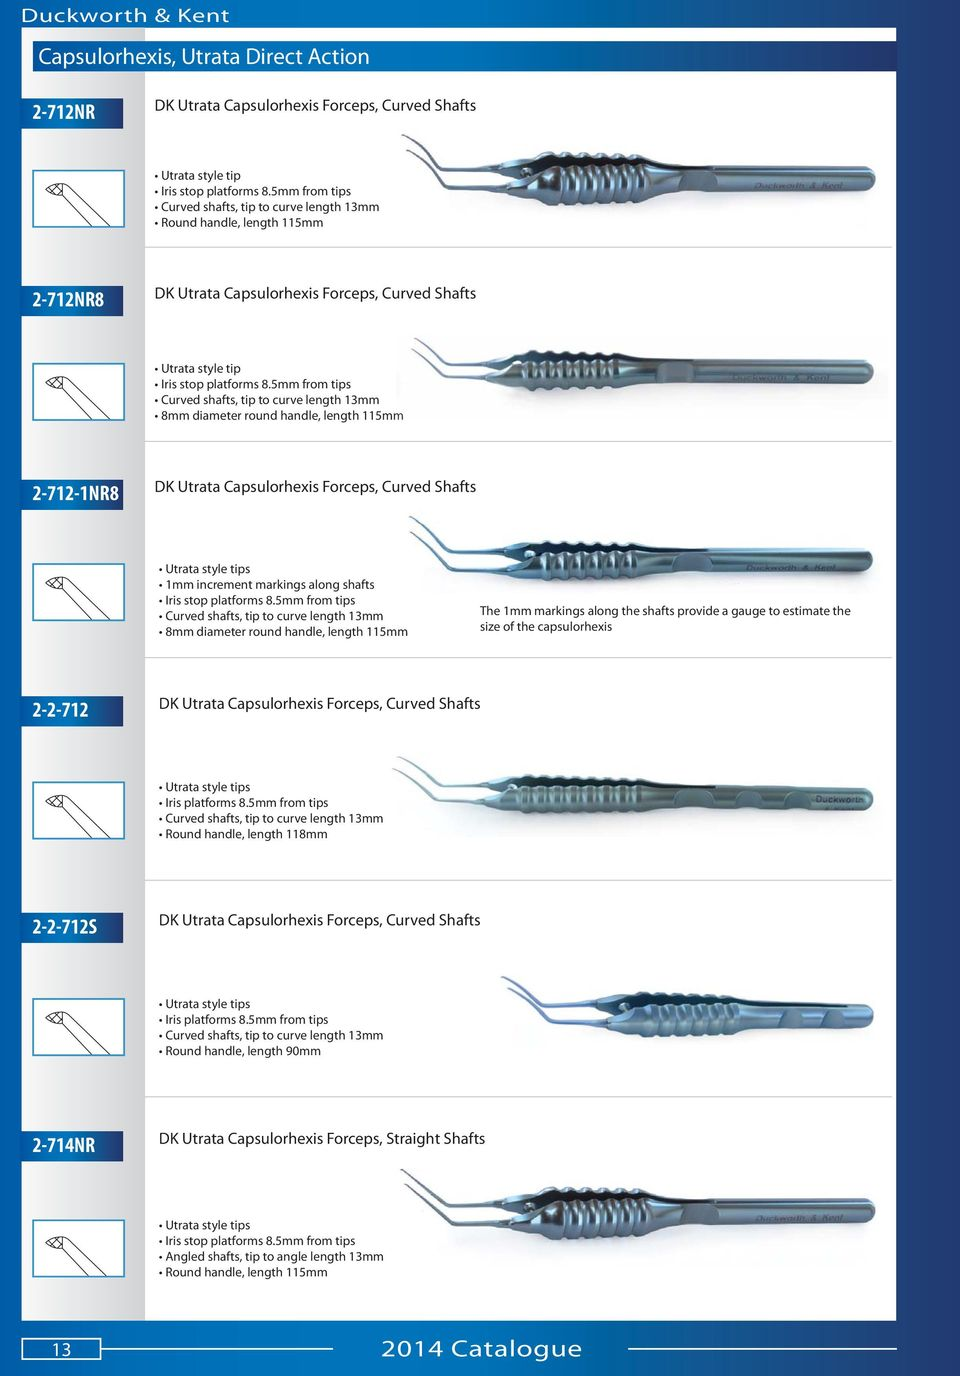 5mm from tips Curved shafts, tip to curve length 13mm 8mm diameter round handle, length 115mmm 2-712-1NR8 DK Utrata Capsulorhexis Forceps, Curved Shafts Utrata style tips 1mm increment markings along